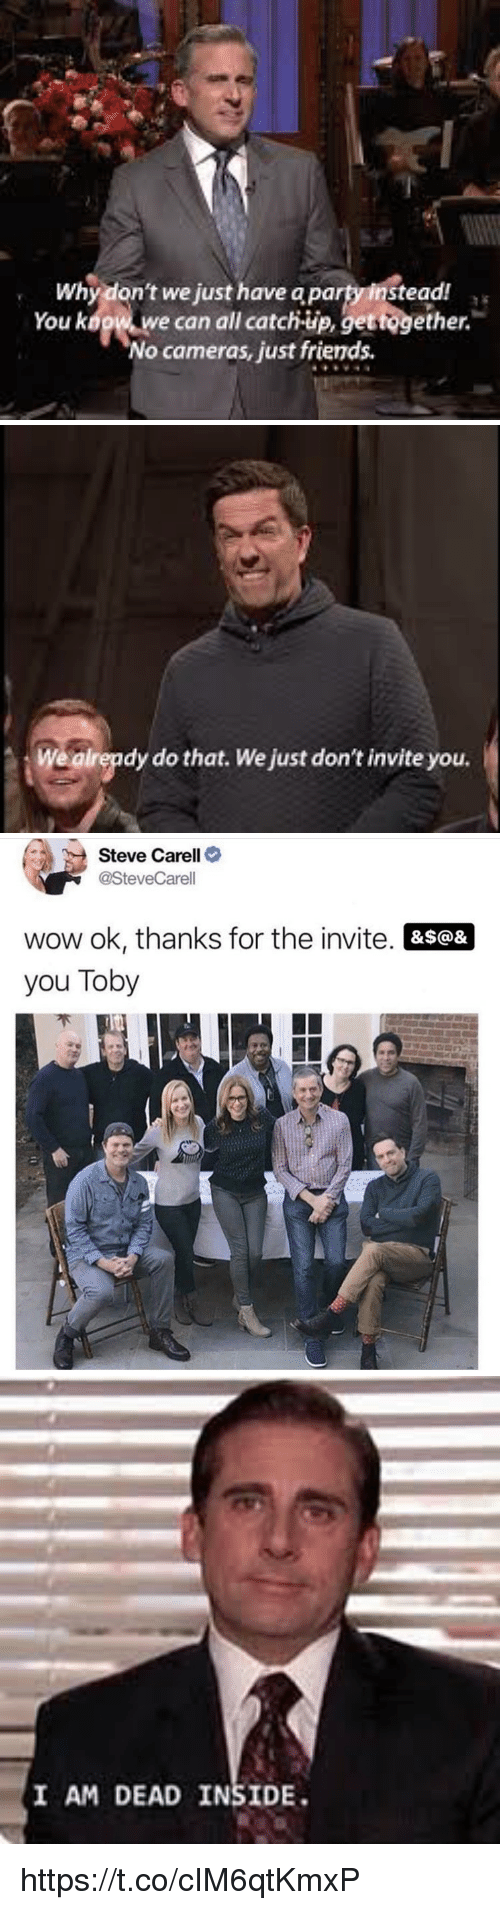 Friends, Party, and Steve Carell: Why don't we just have a party instead  You kogw w  e can all catch-up, gettogether.  No cameras, just friends   Wealrepdy do that. We just don't invite you.   Steve Carell>  @SteveCarell  wow ok, thanks for the invite. &s@&  you Toby   I AM DEAD INSIDE https://t.co/cIM6qtKmxP